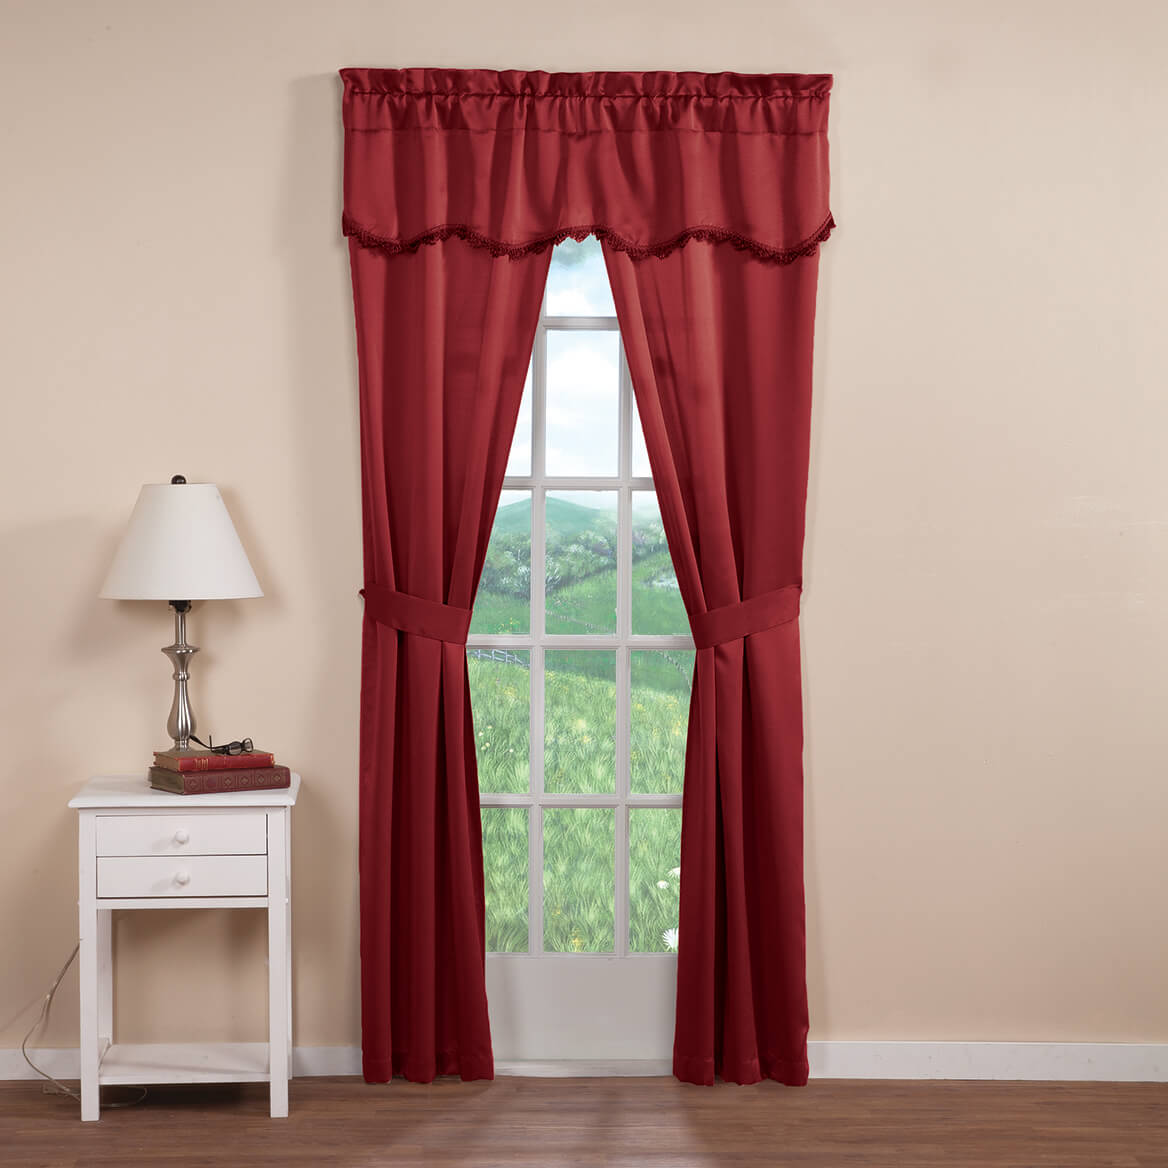 105 Inch Curtains Curtains Valances Miles Kimball